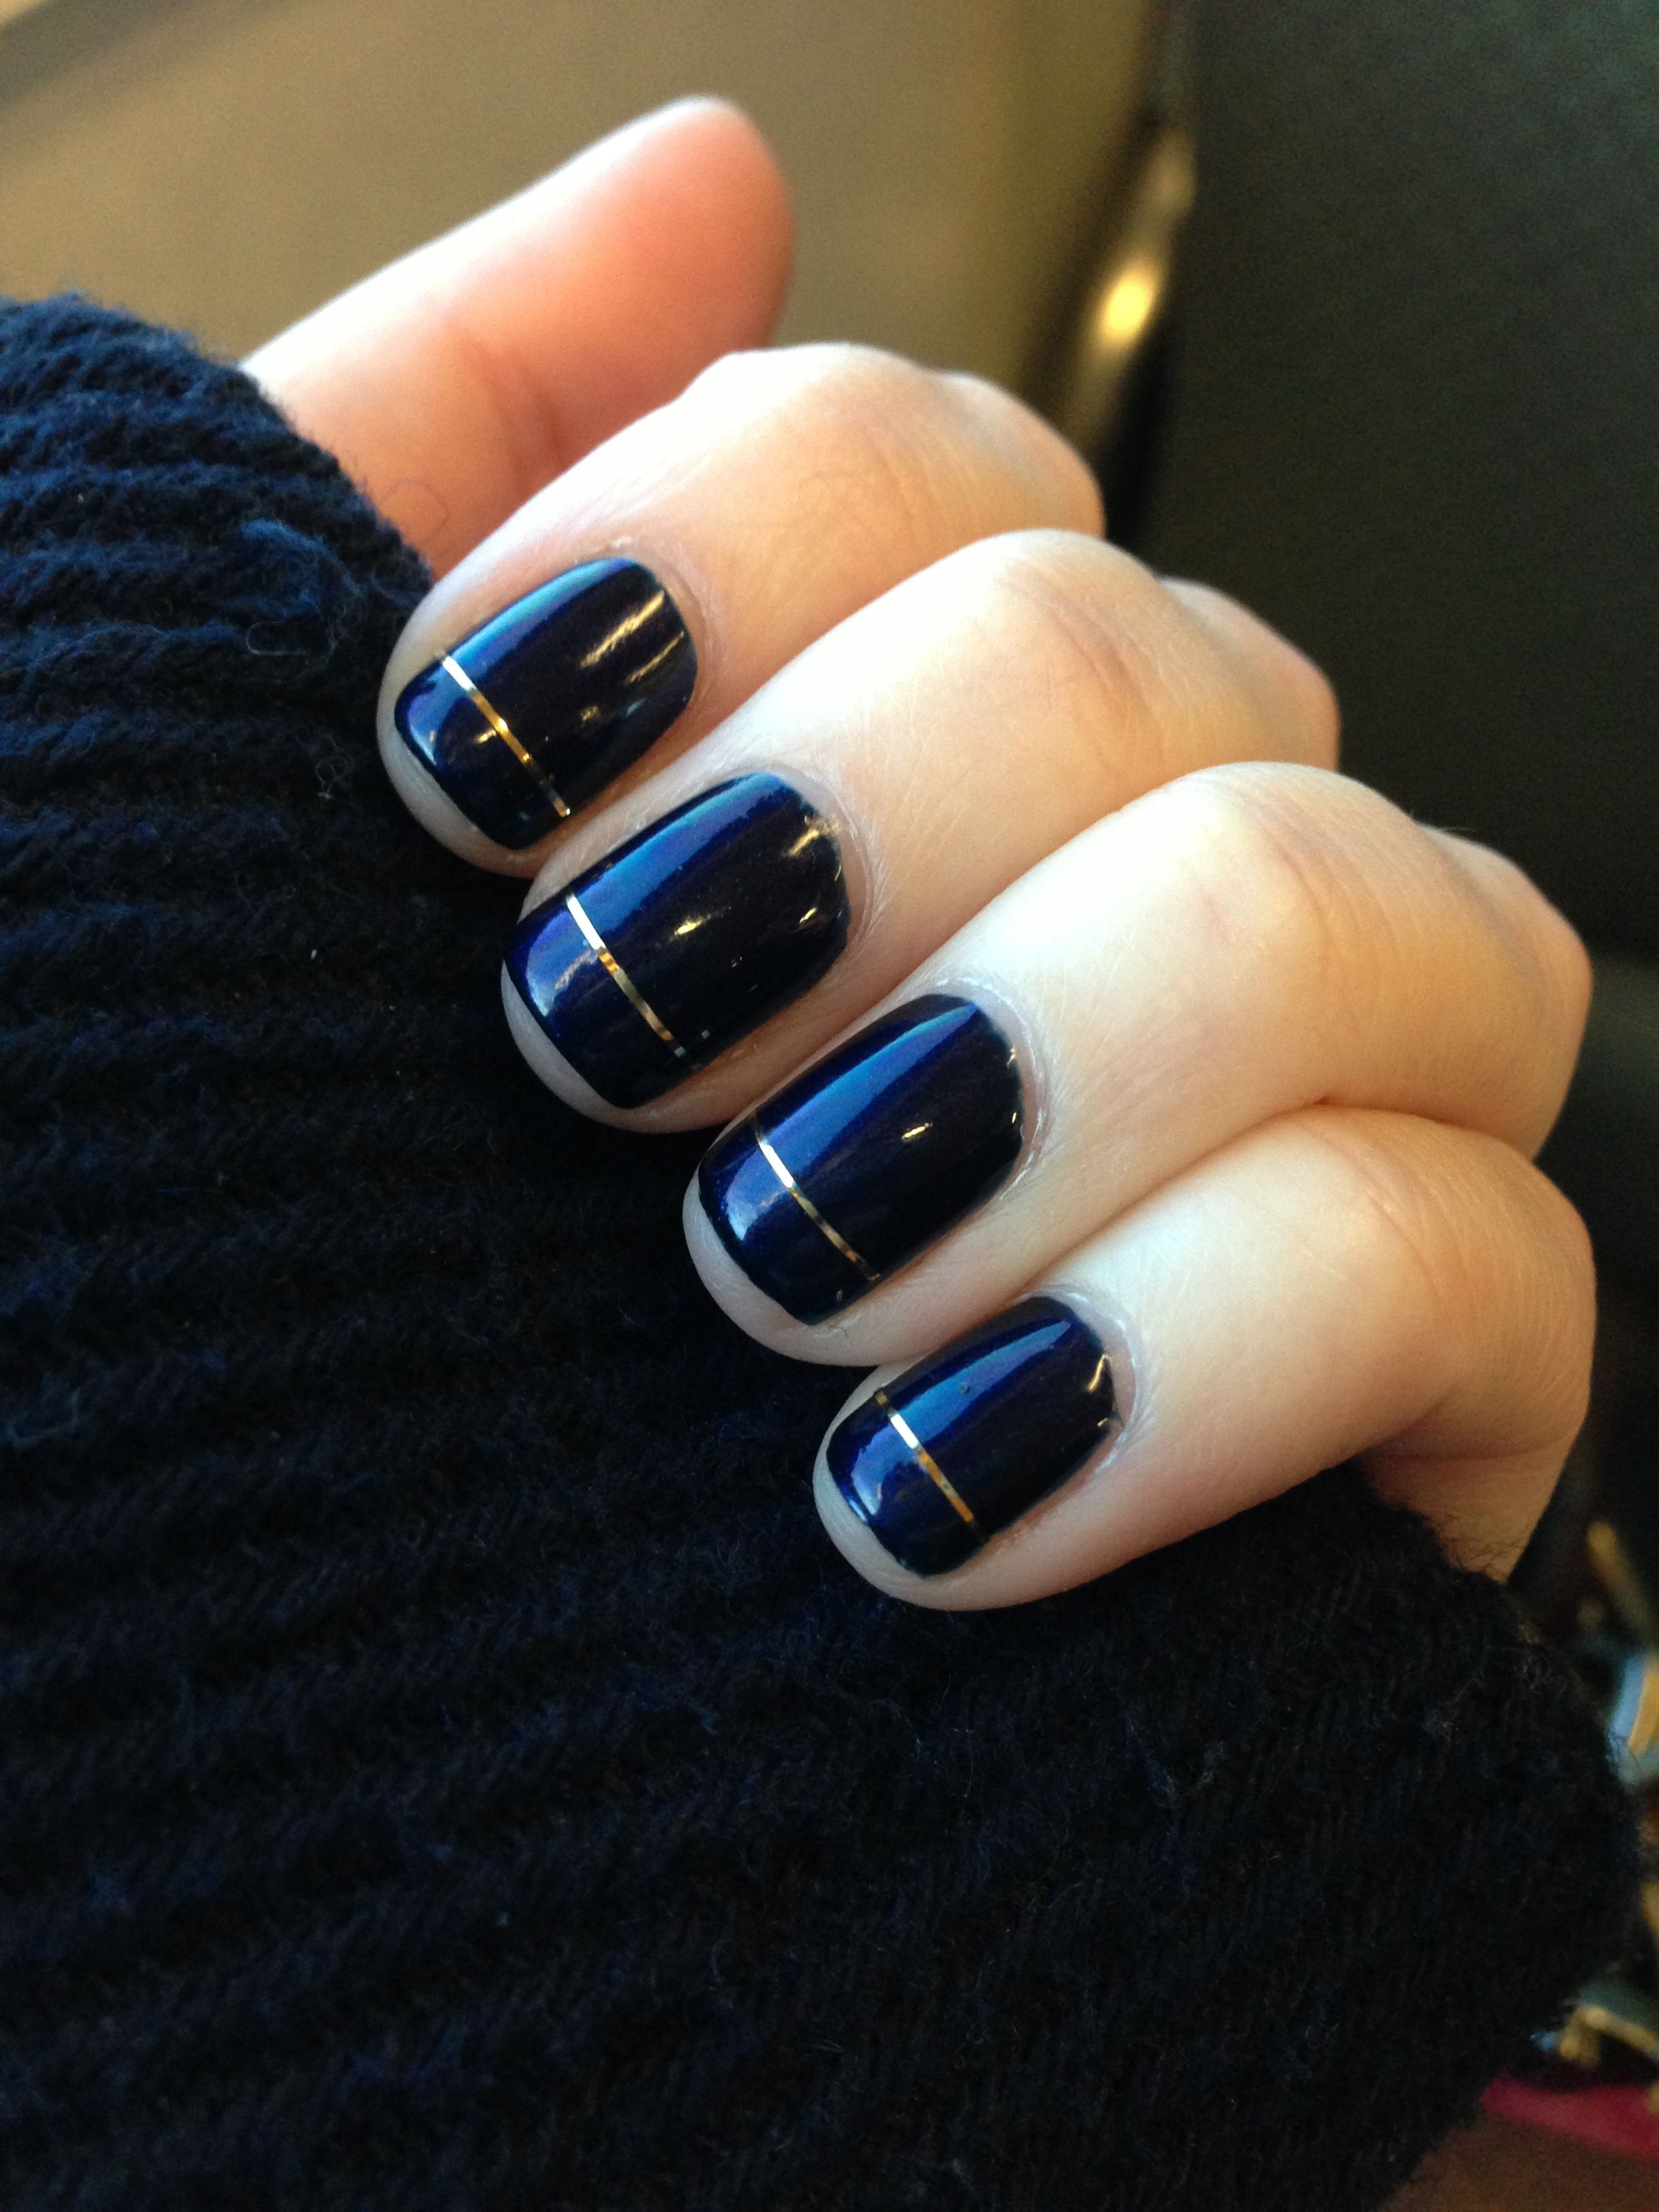 Navy and gold nails #kendrascott #teamKS | Mani/Pedi | Pinterest ...